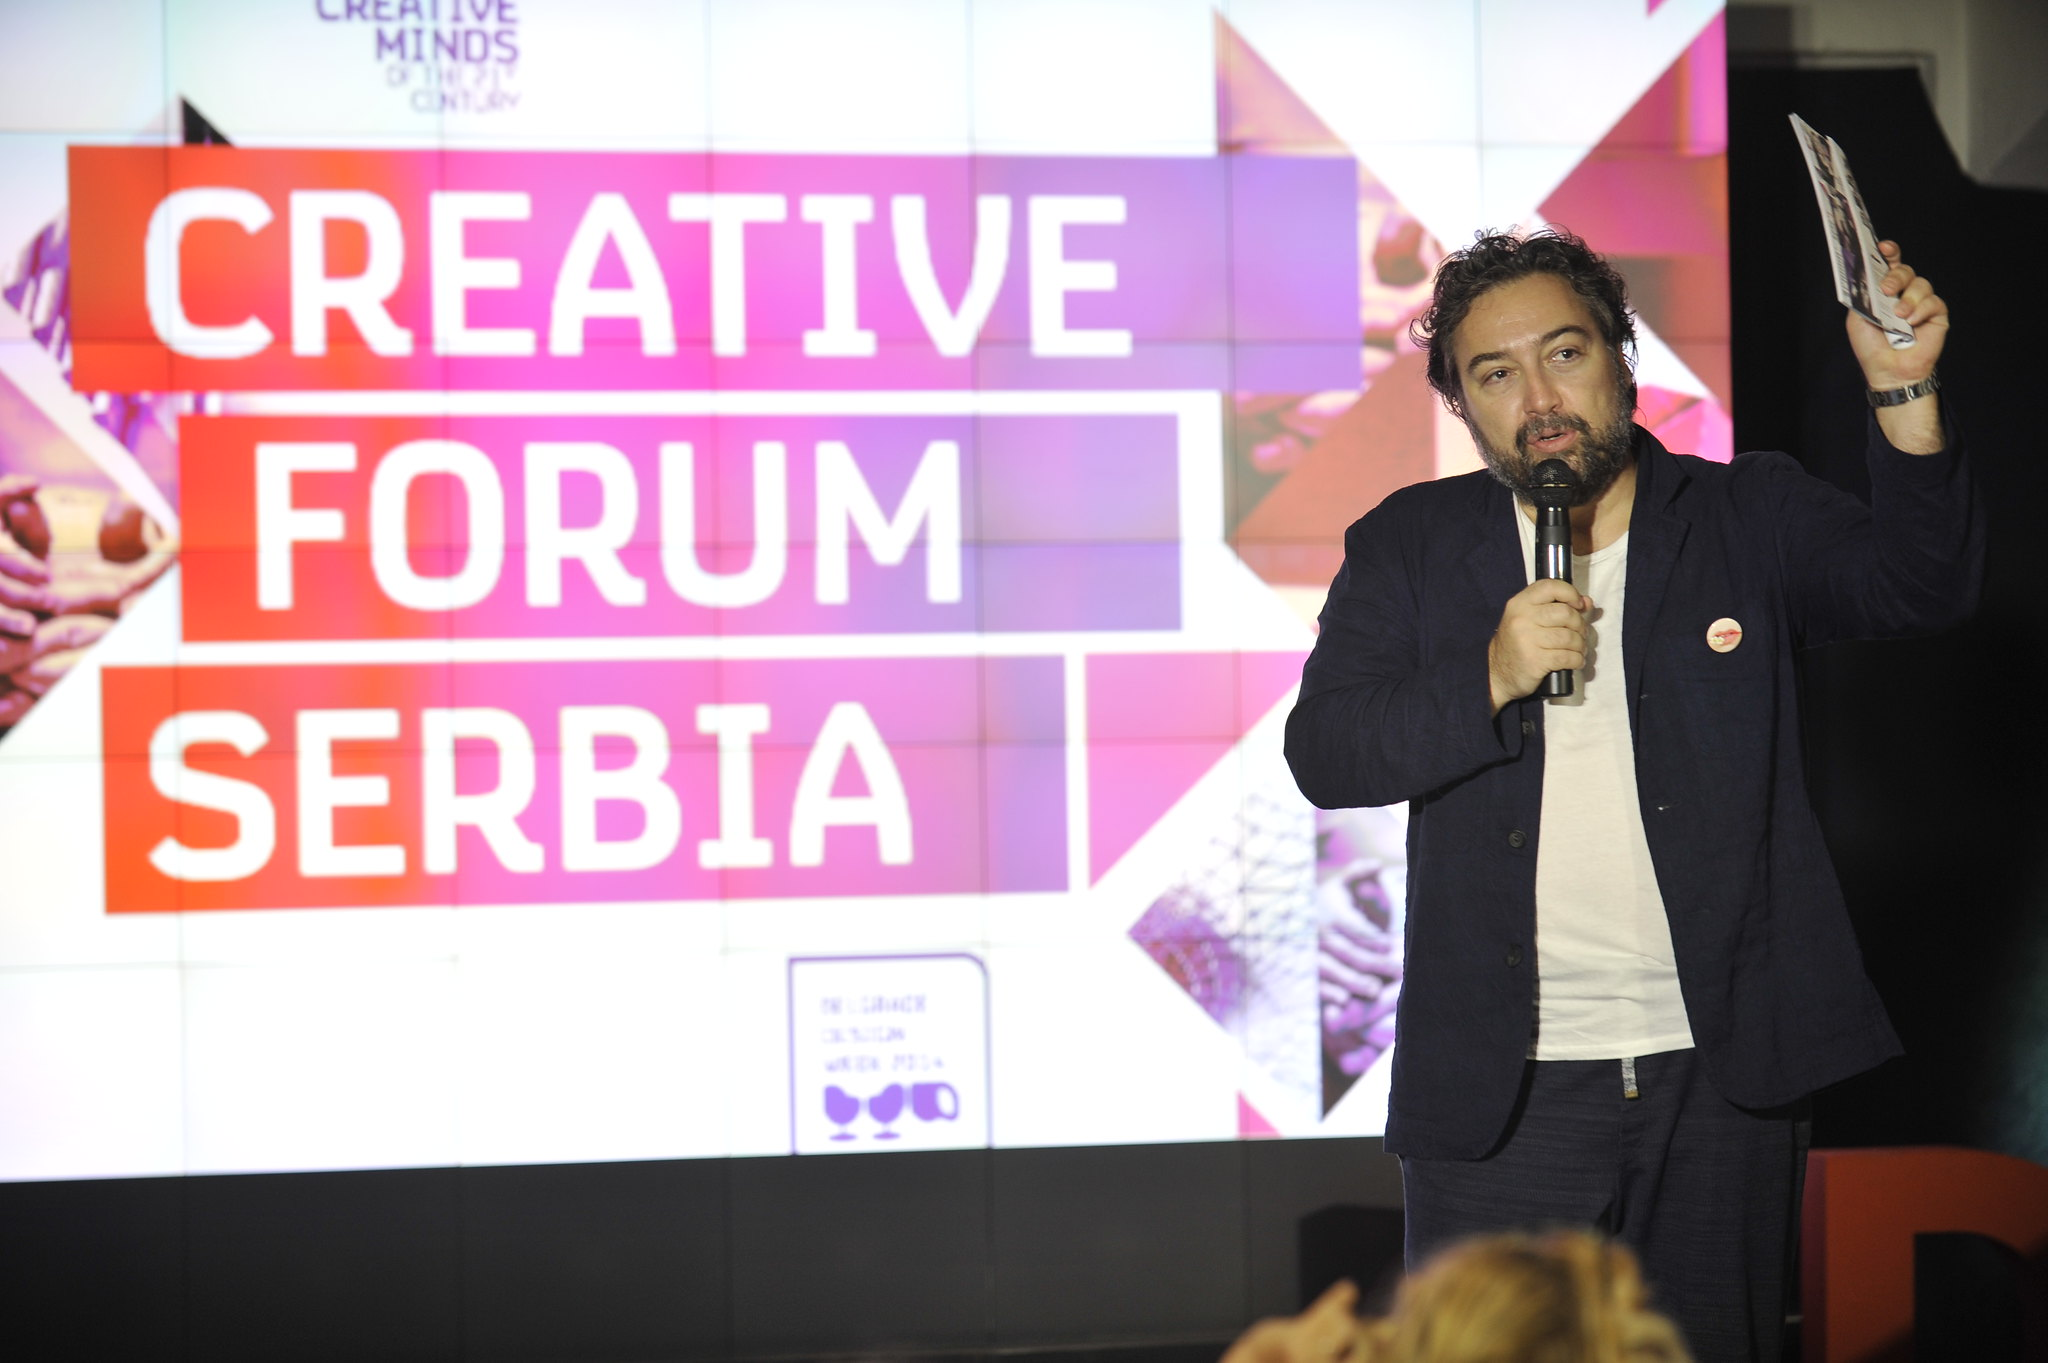 BDW Creative Forum Serbia 2013-2014